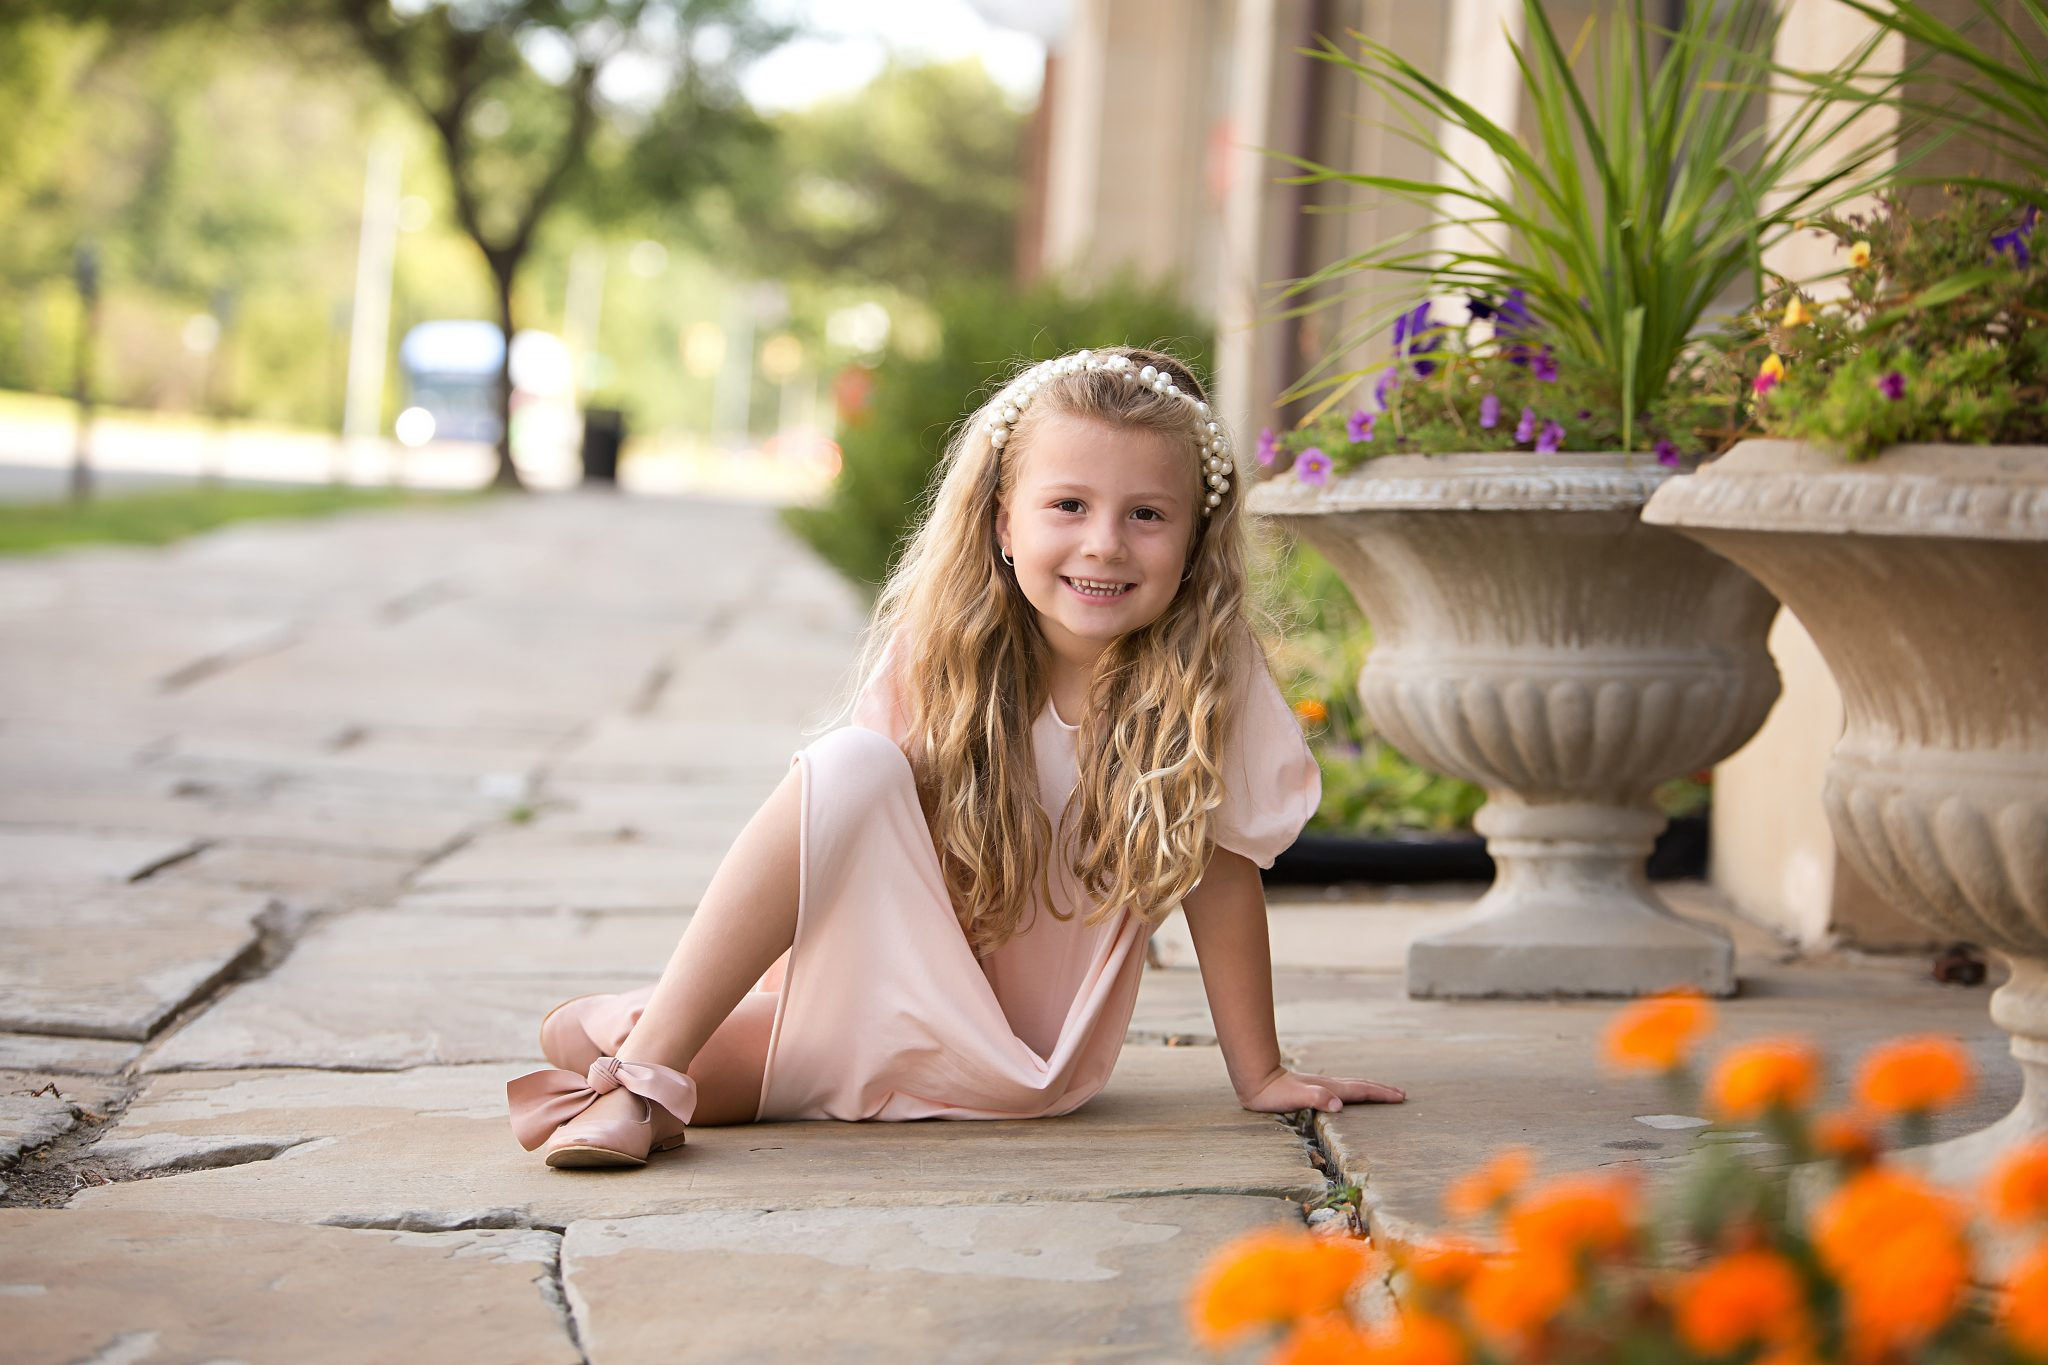 five year old blonde girl in peach colored dress sits on stone sidewalk with flowers around